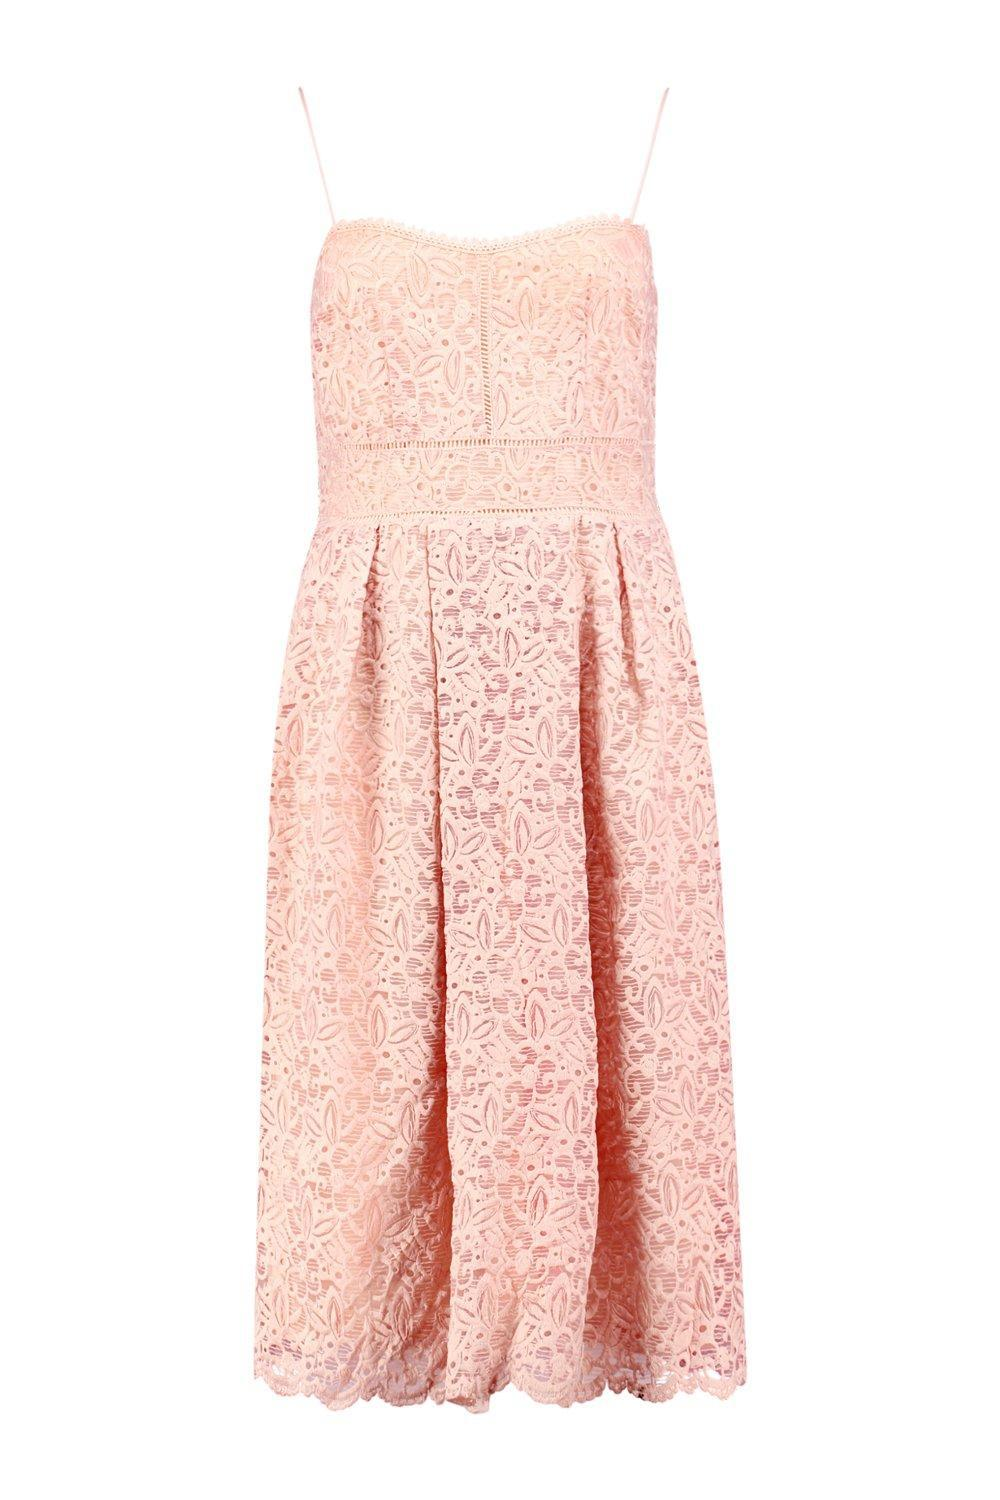 Boohoo - Pink Boutique Embroidered Strappy Midi Skater Dress - Lyst. View  fullscreen 893f2d9c4